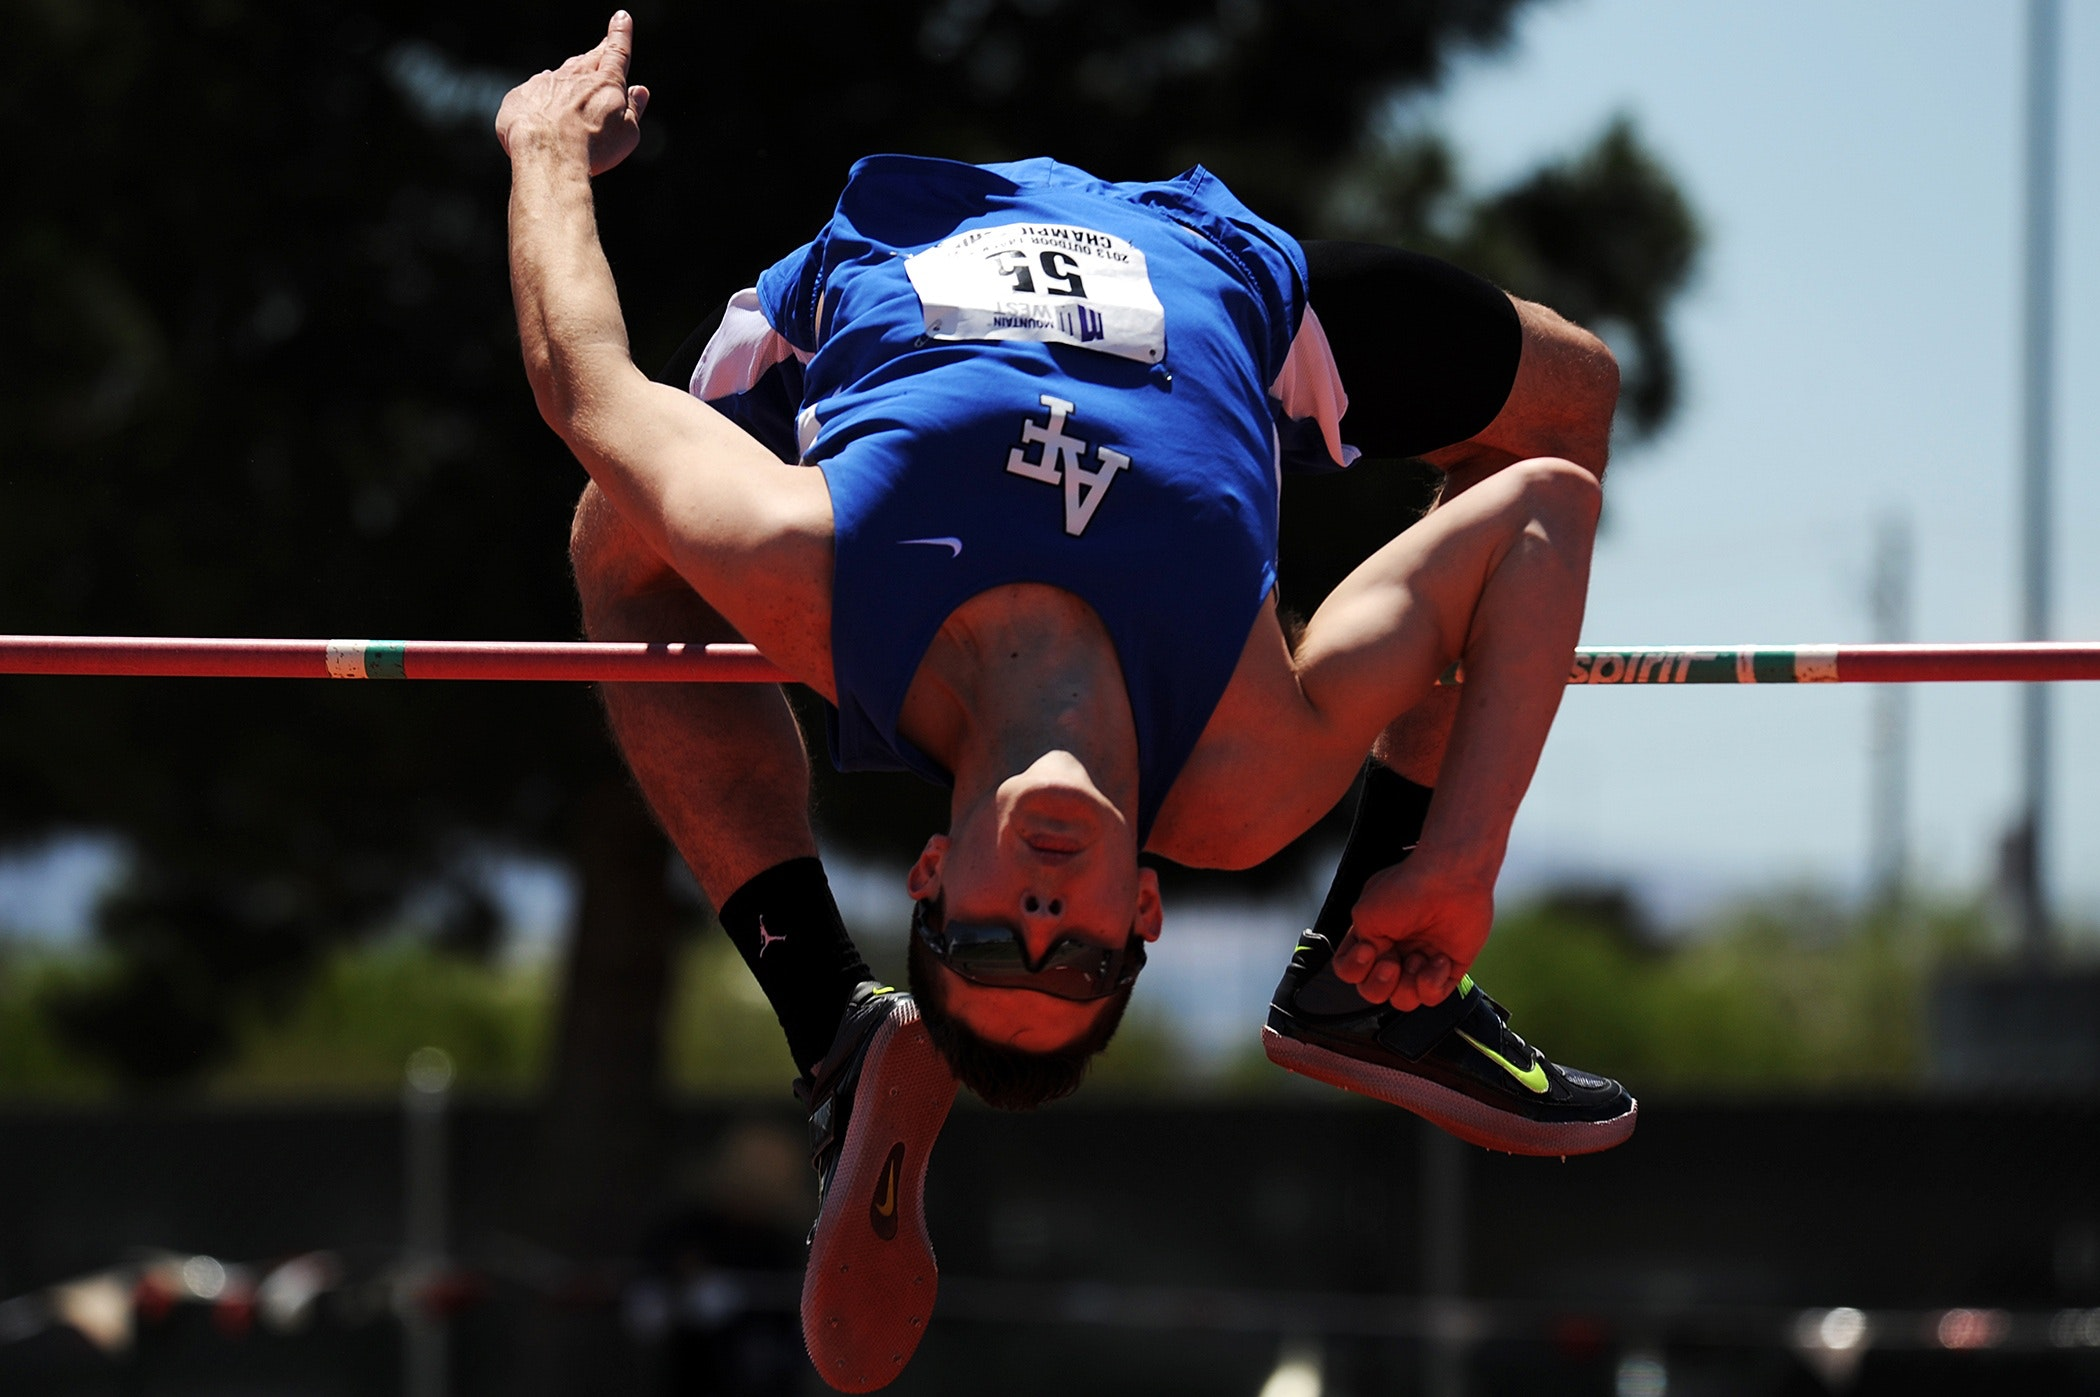 Man Jumping over Red Rod, Action, Jump, Sunglasses, Person, HQ Photo